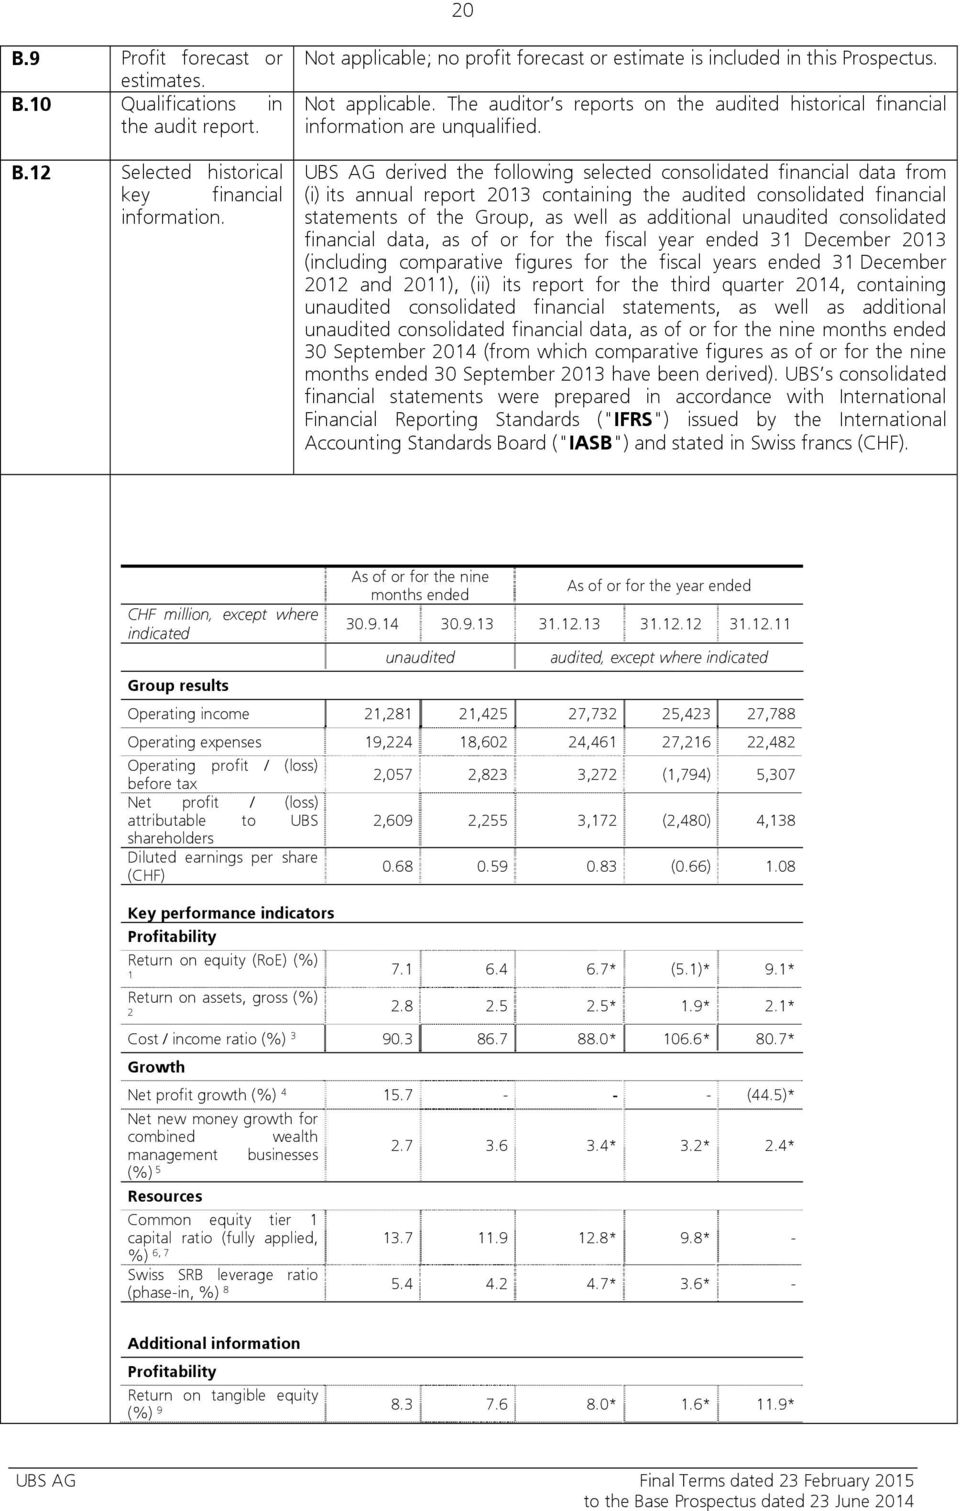 UBS AG derived the following selected consolidated financial data from (i) its annual report 2013 containing the audited consolidated financial statements of the Group, as well as additional